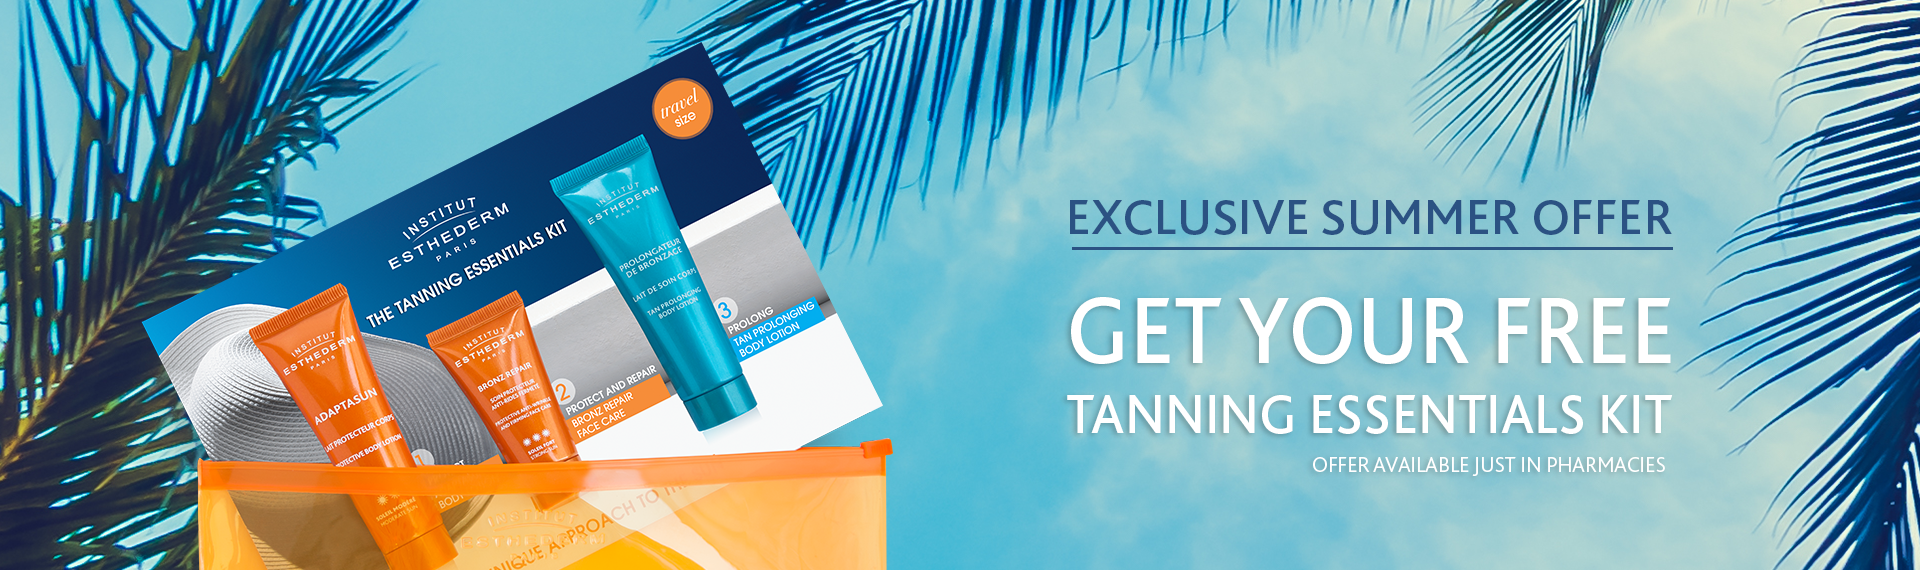 Exclusive summer offer